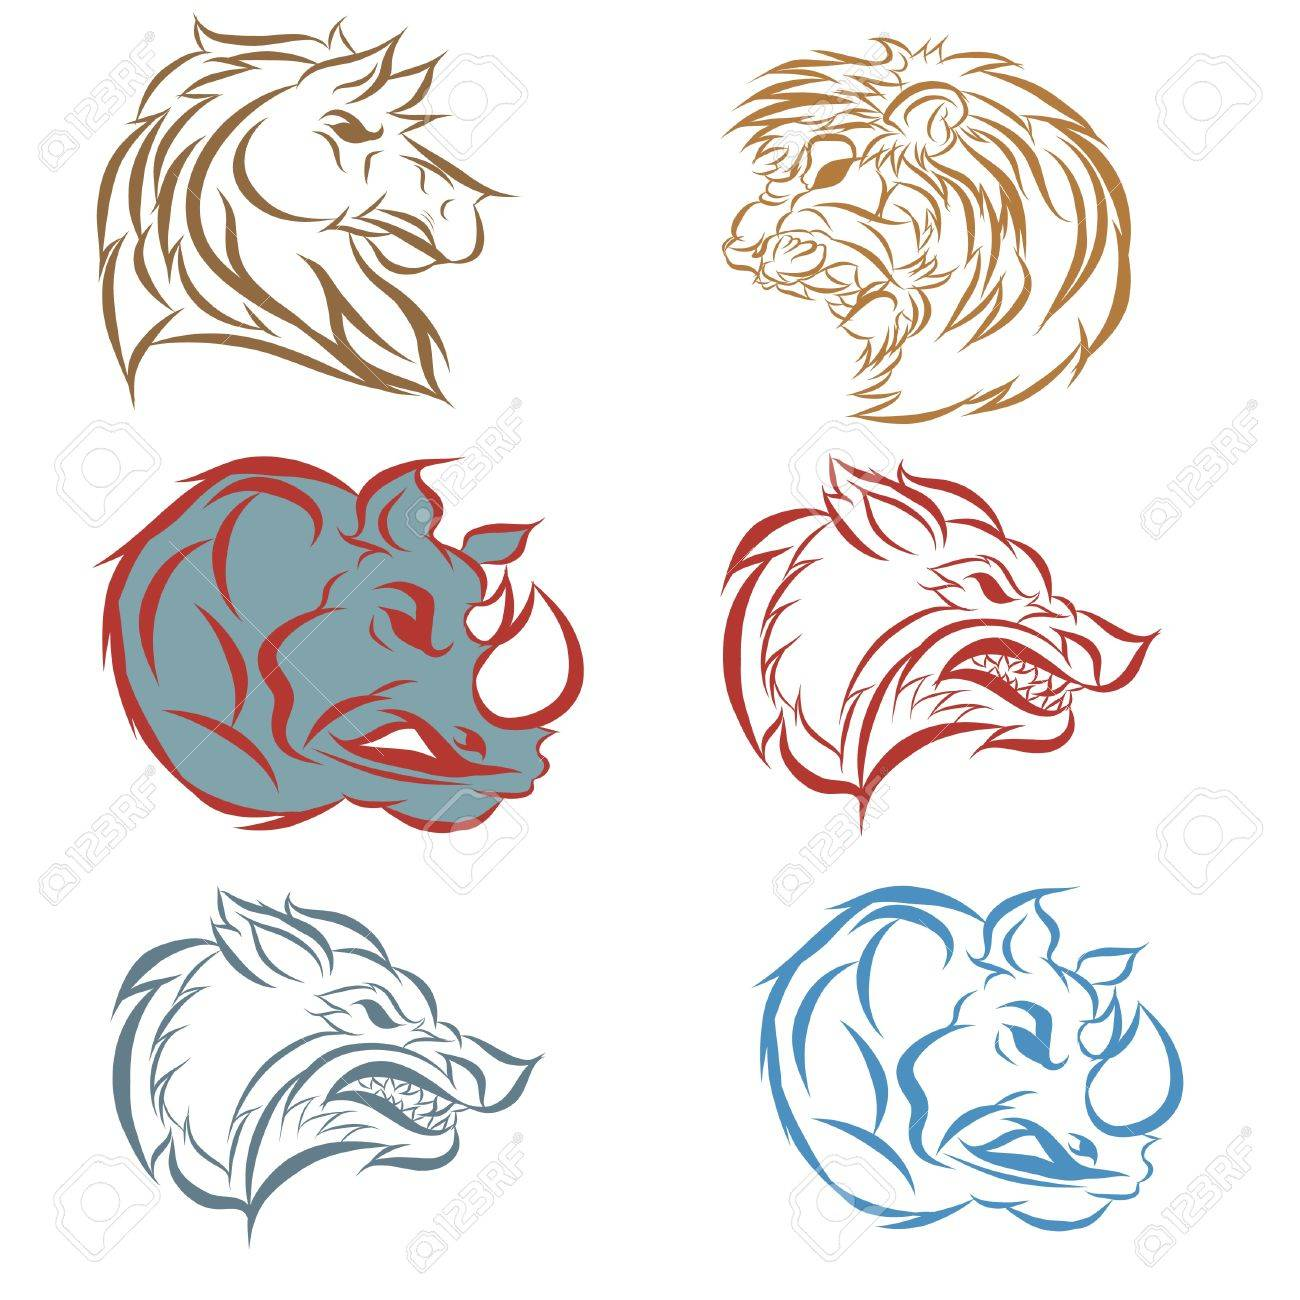 1300x1300 Hand Draw Illustration Of Animal Faces Royalty Free Cliparts